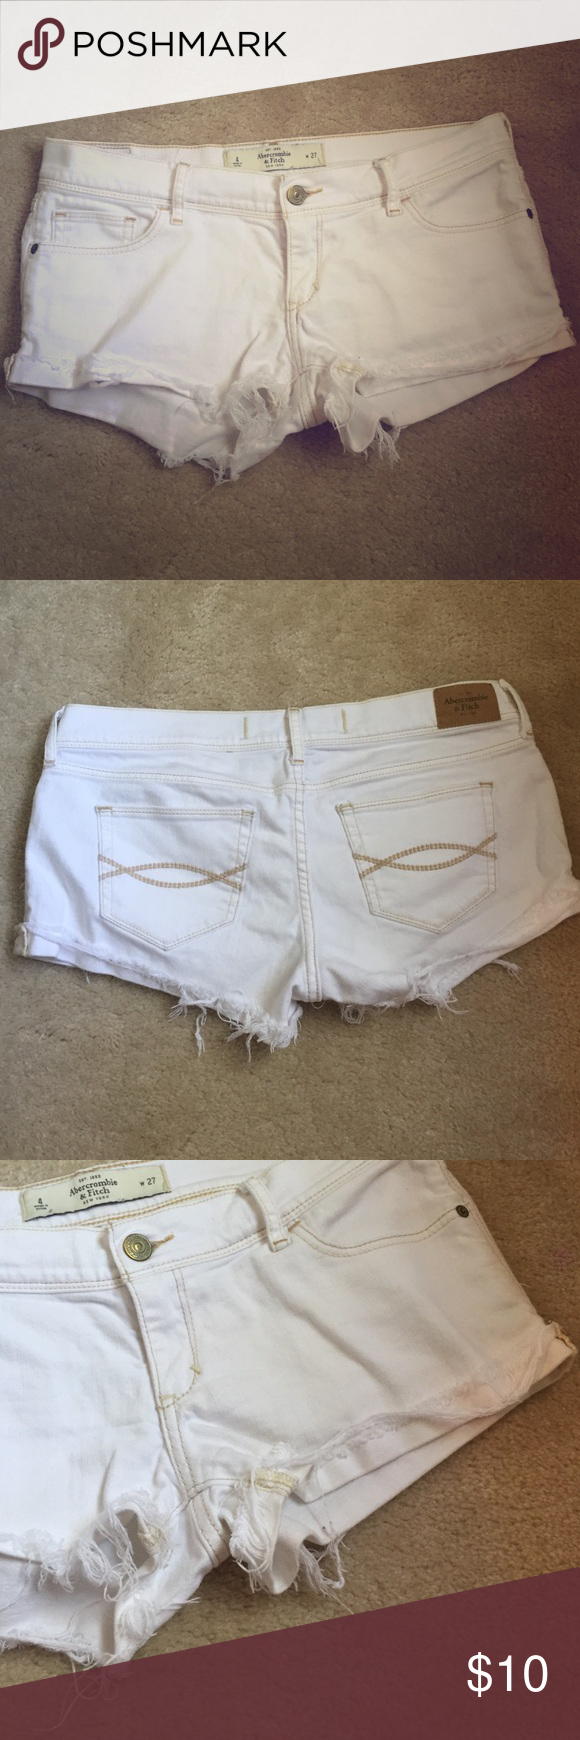 Abercrombie and Fitch white jean shorts Classic low-rise A&F shorts, gently used but in great condition--no stains! White stretchy denim with distressed, cuffed edges. Size 4/27. Abercrombie & Fitch Shorts Jean Shorts